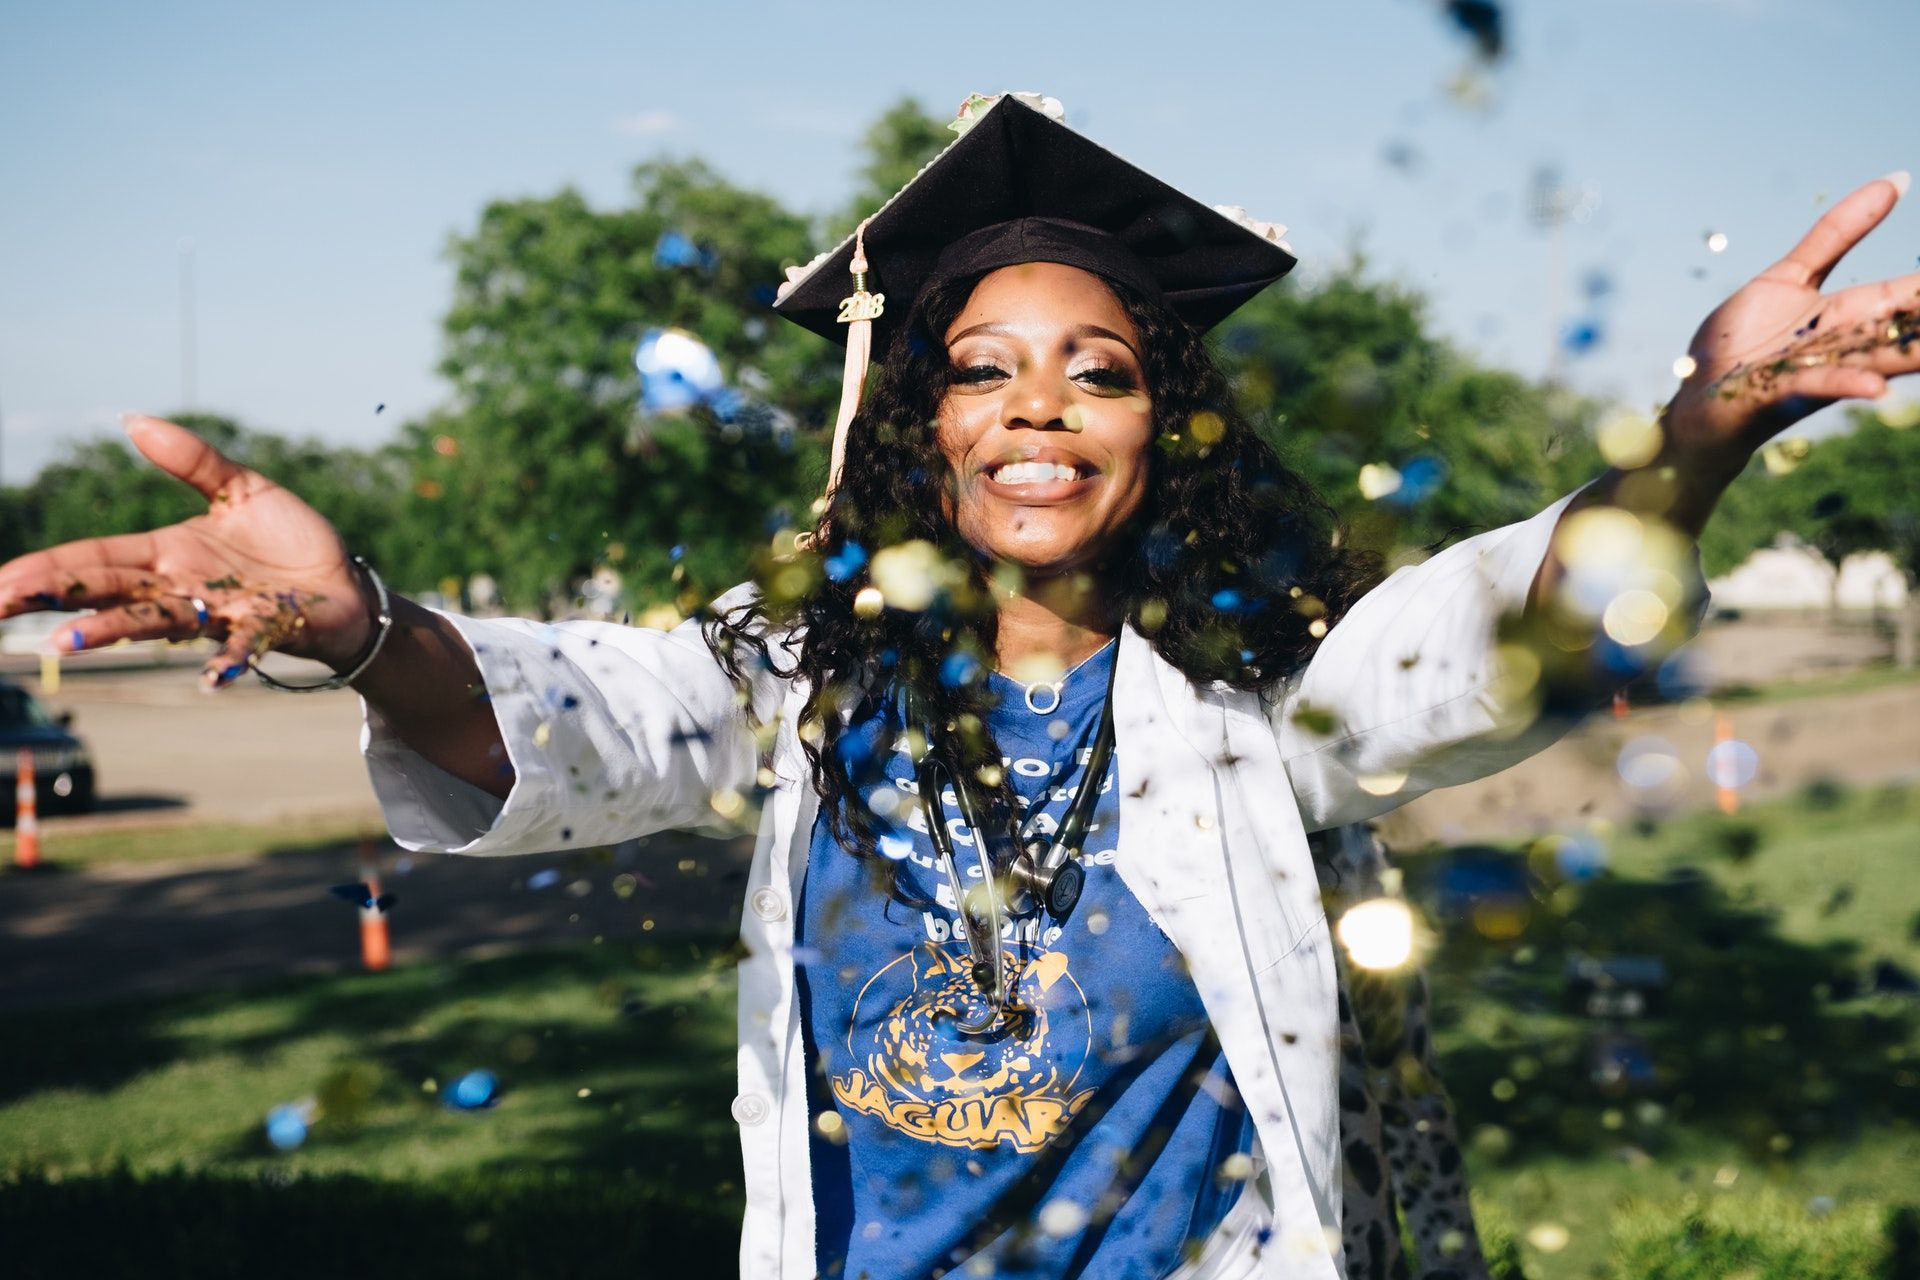 Girl celebrating graduation; Select all that apply NCLEX questions